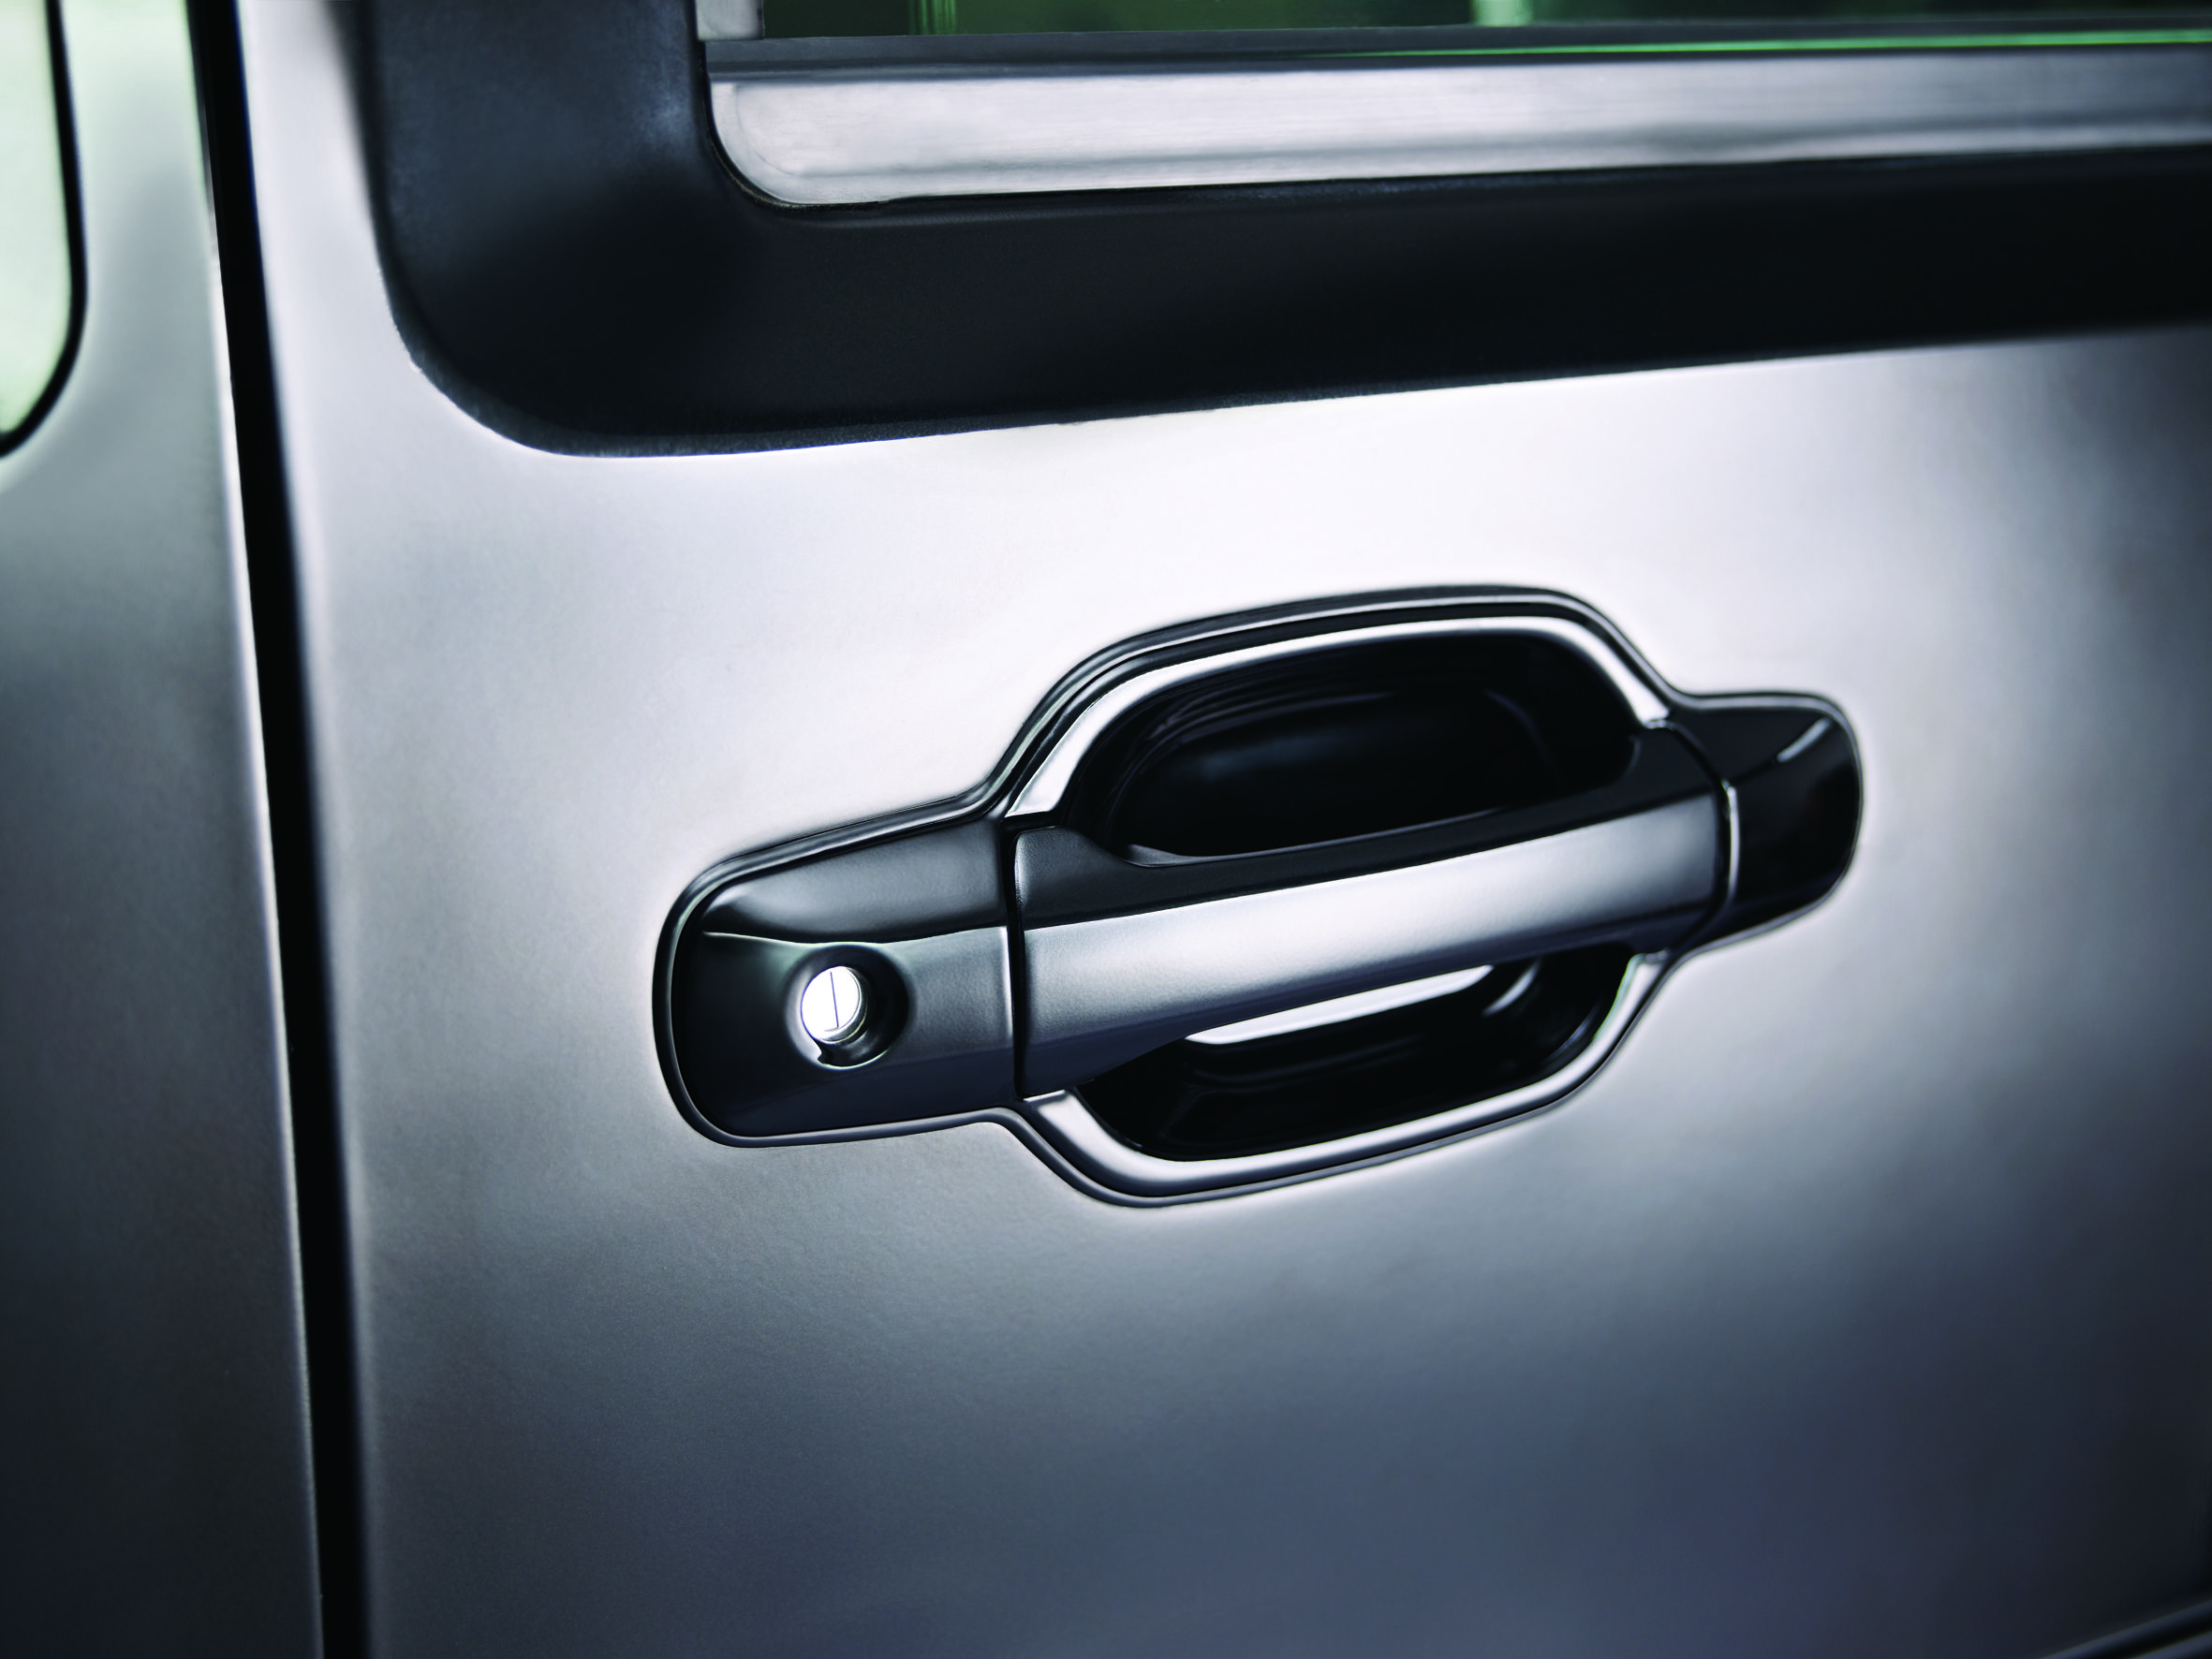 Door Handle Door Handles Doors Handle